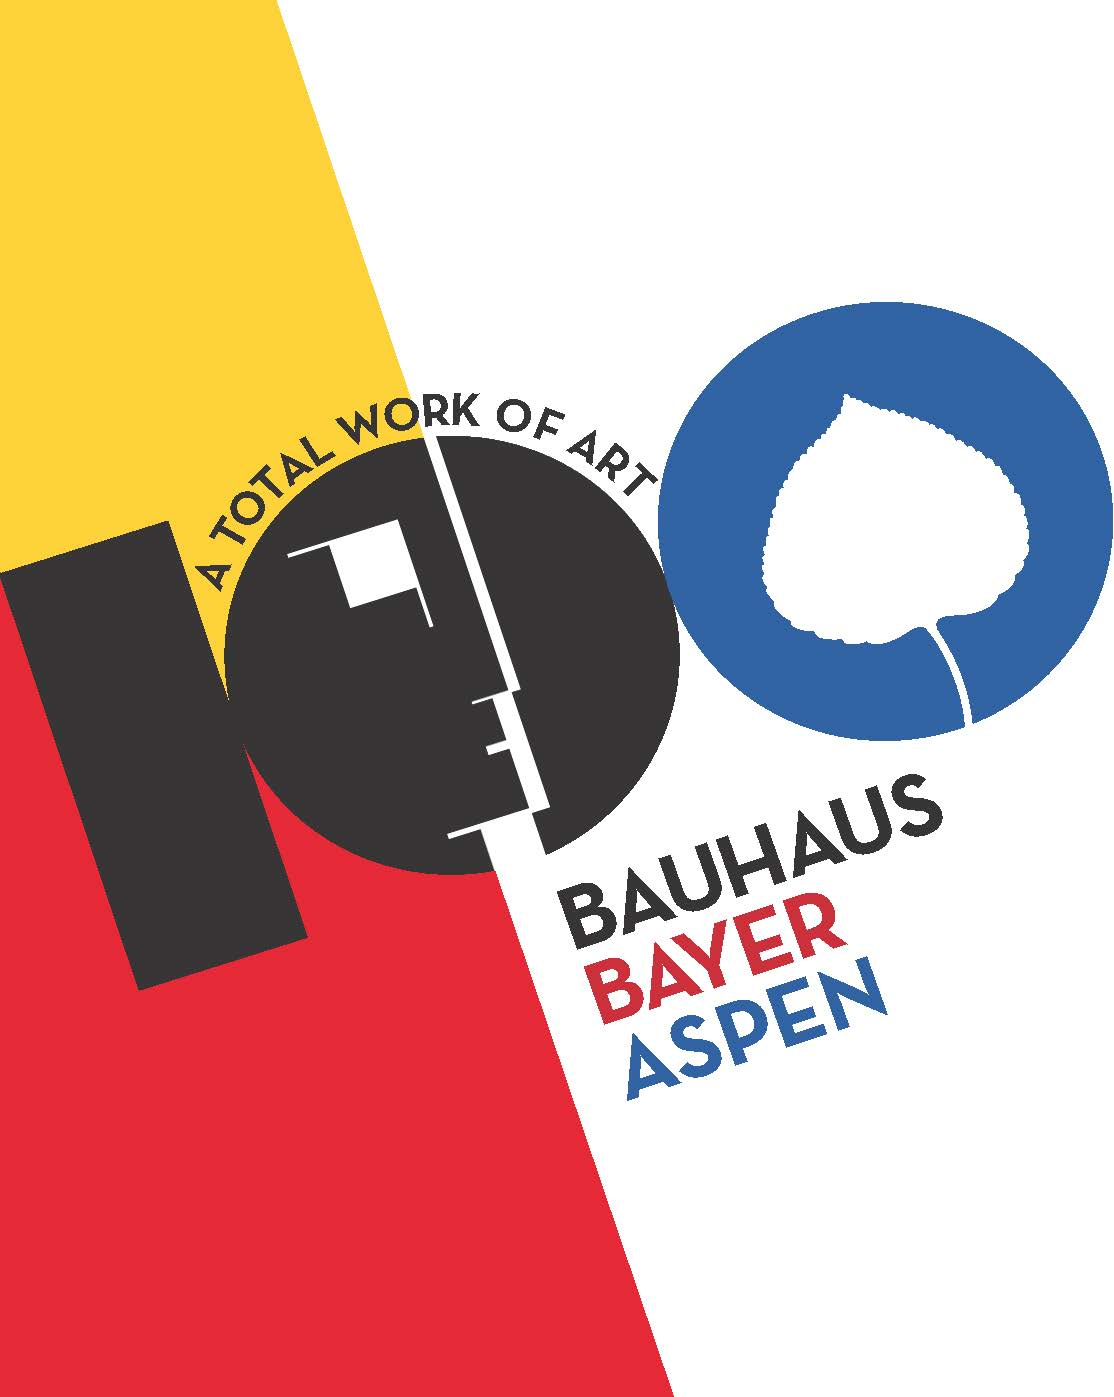 A Total Work of Art: Bauhaus-Bayer Aspen